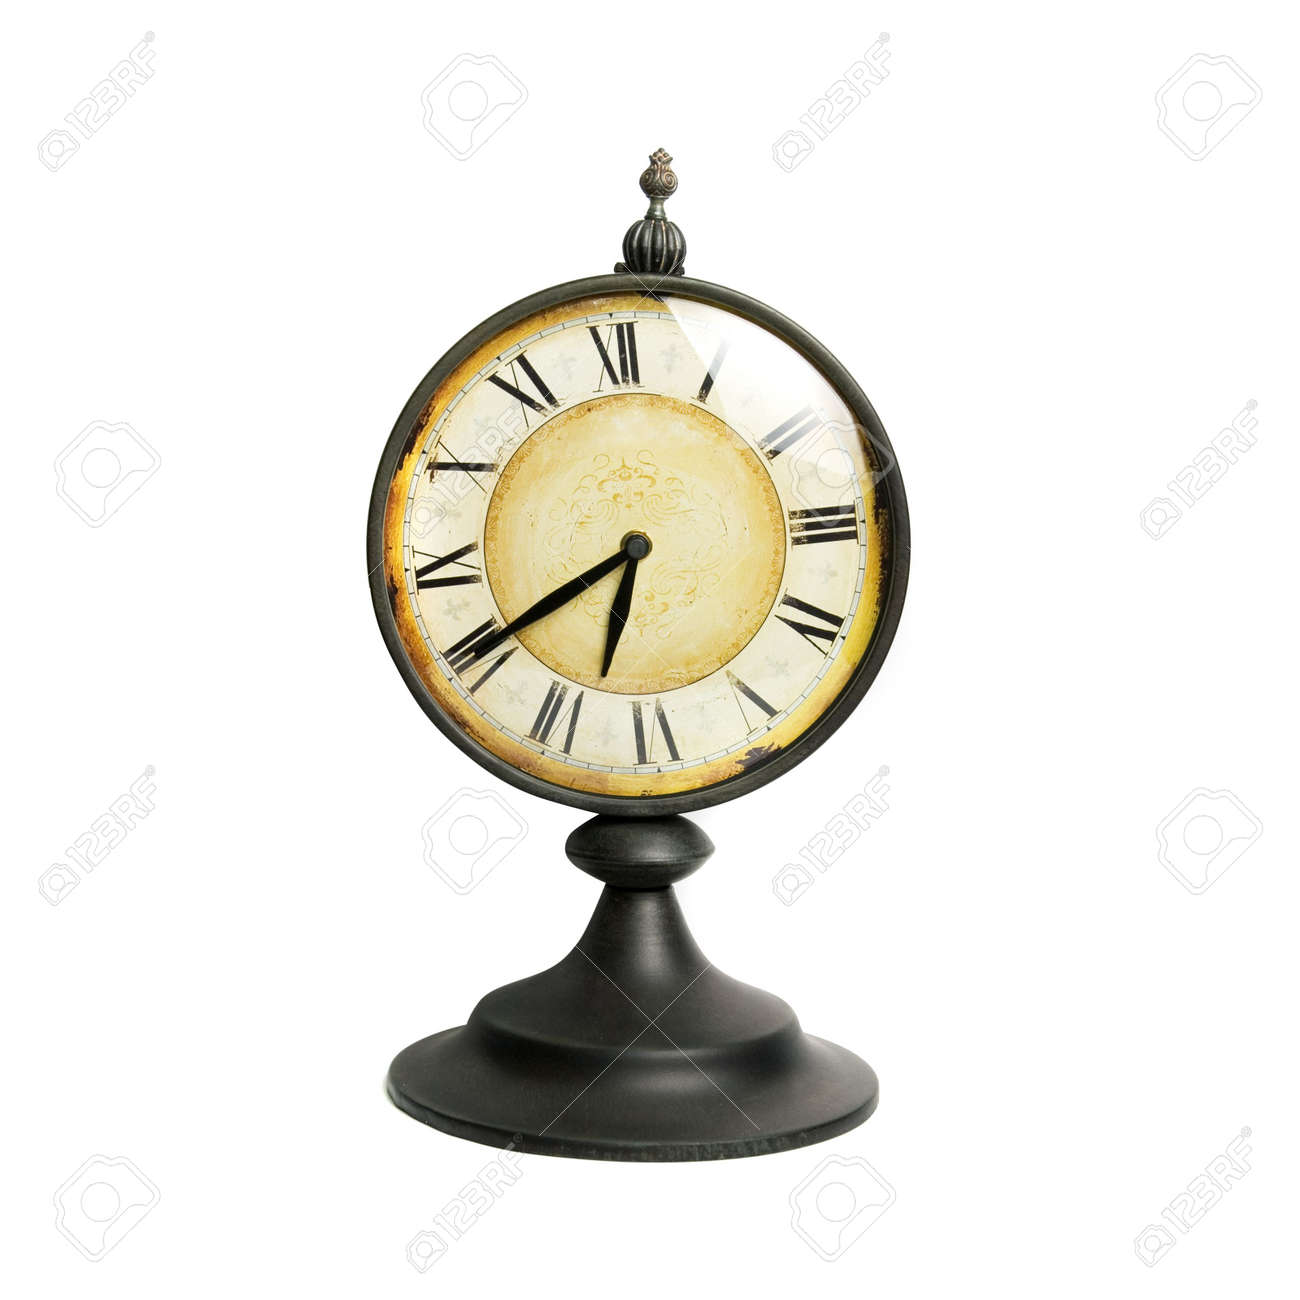 An old vintage clock isolated on a white background Stock Photo - 6397867